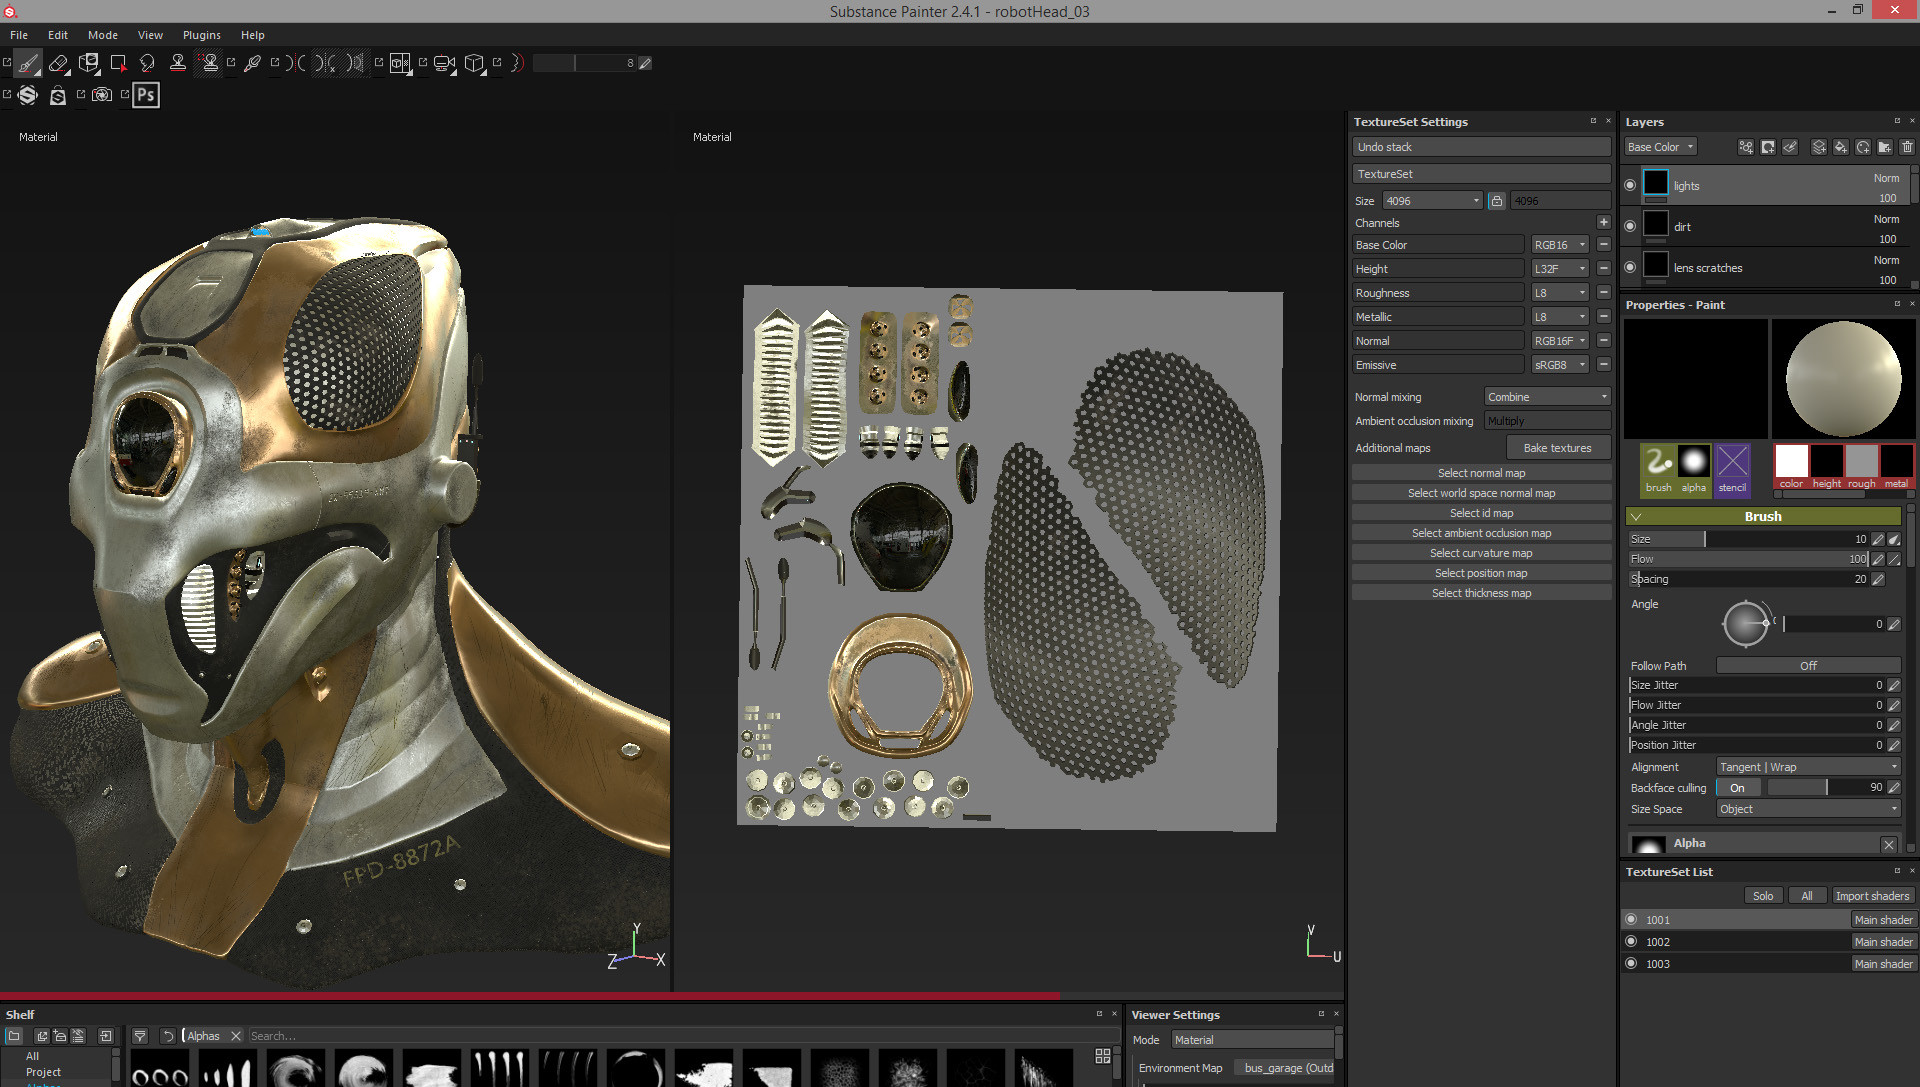 Texturing in Substance Painter